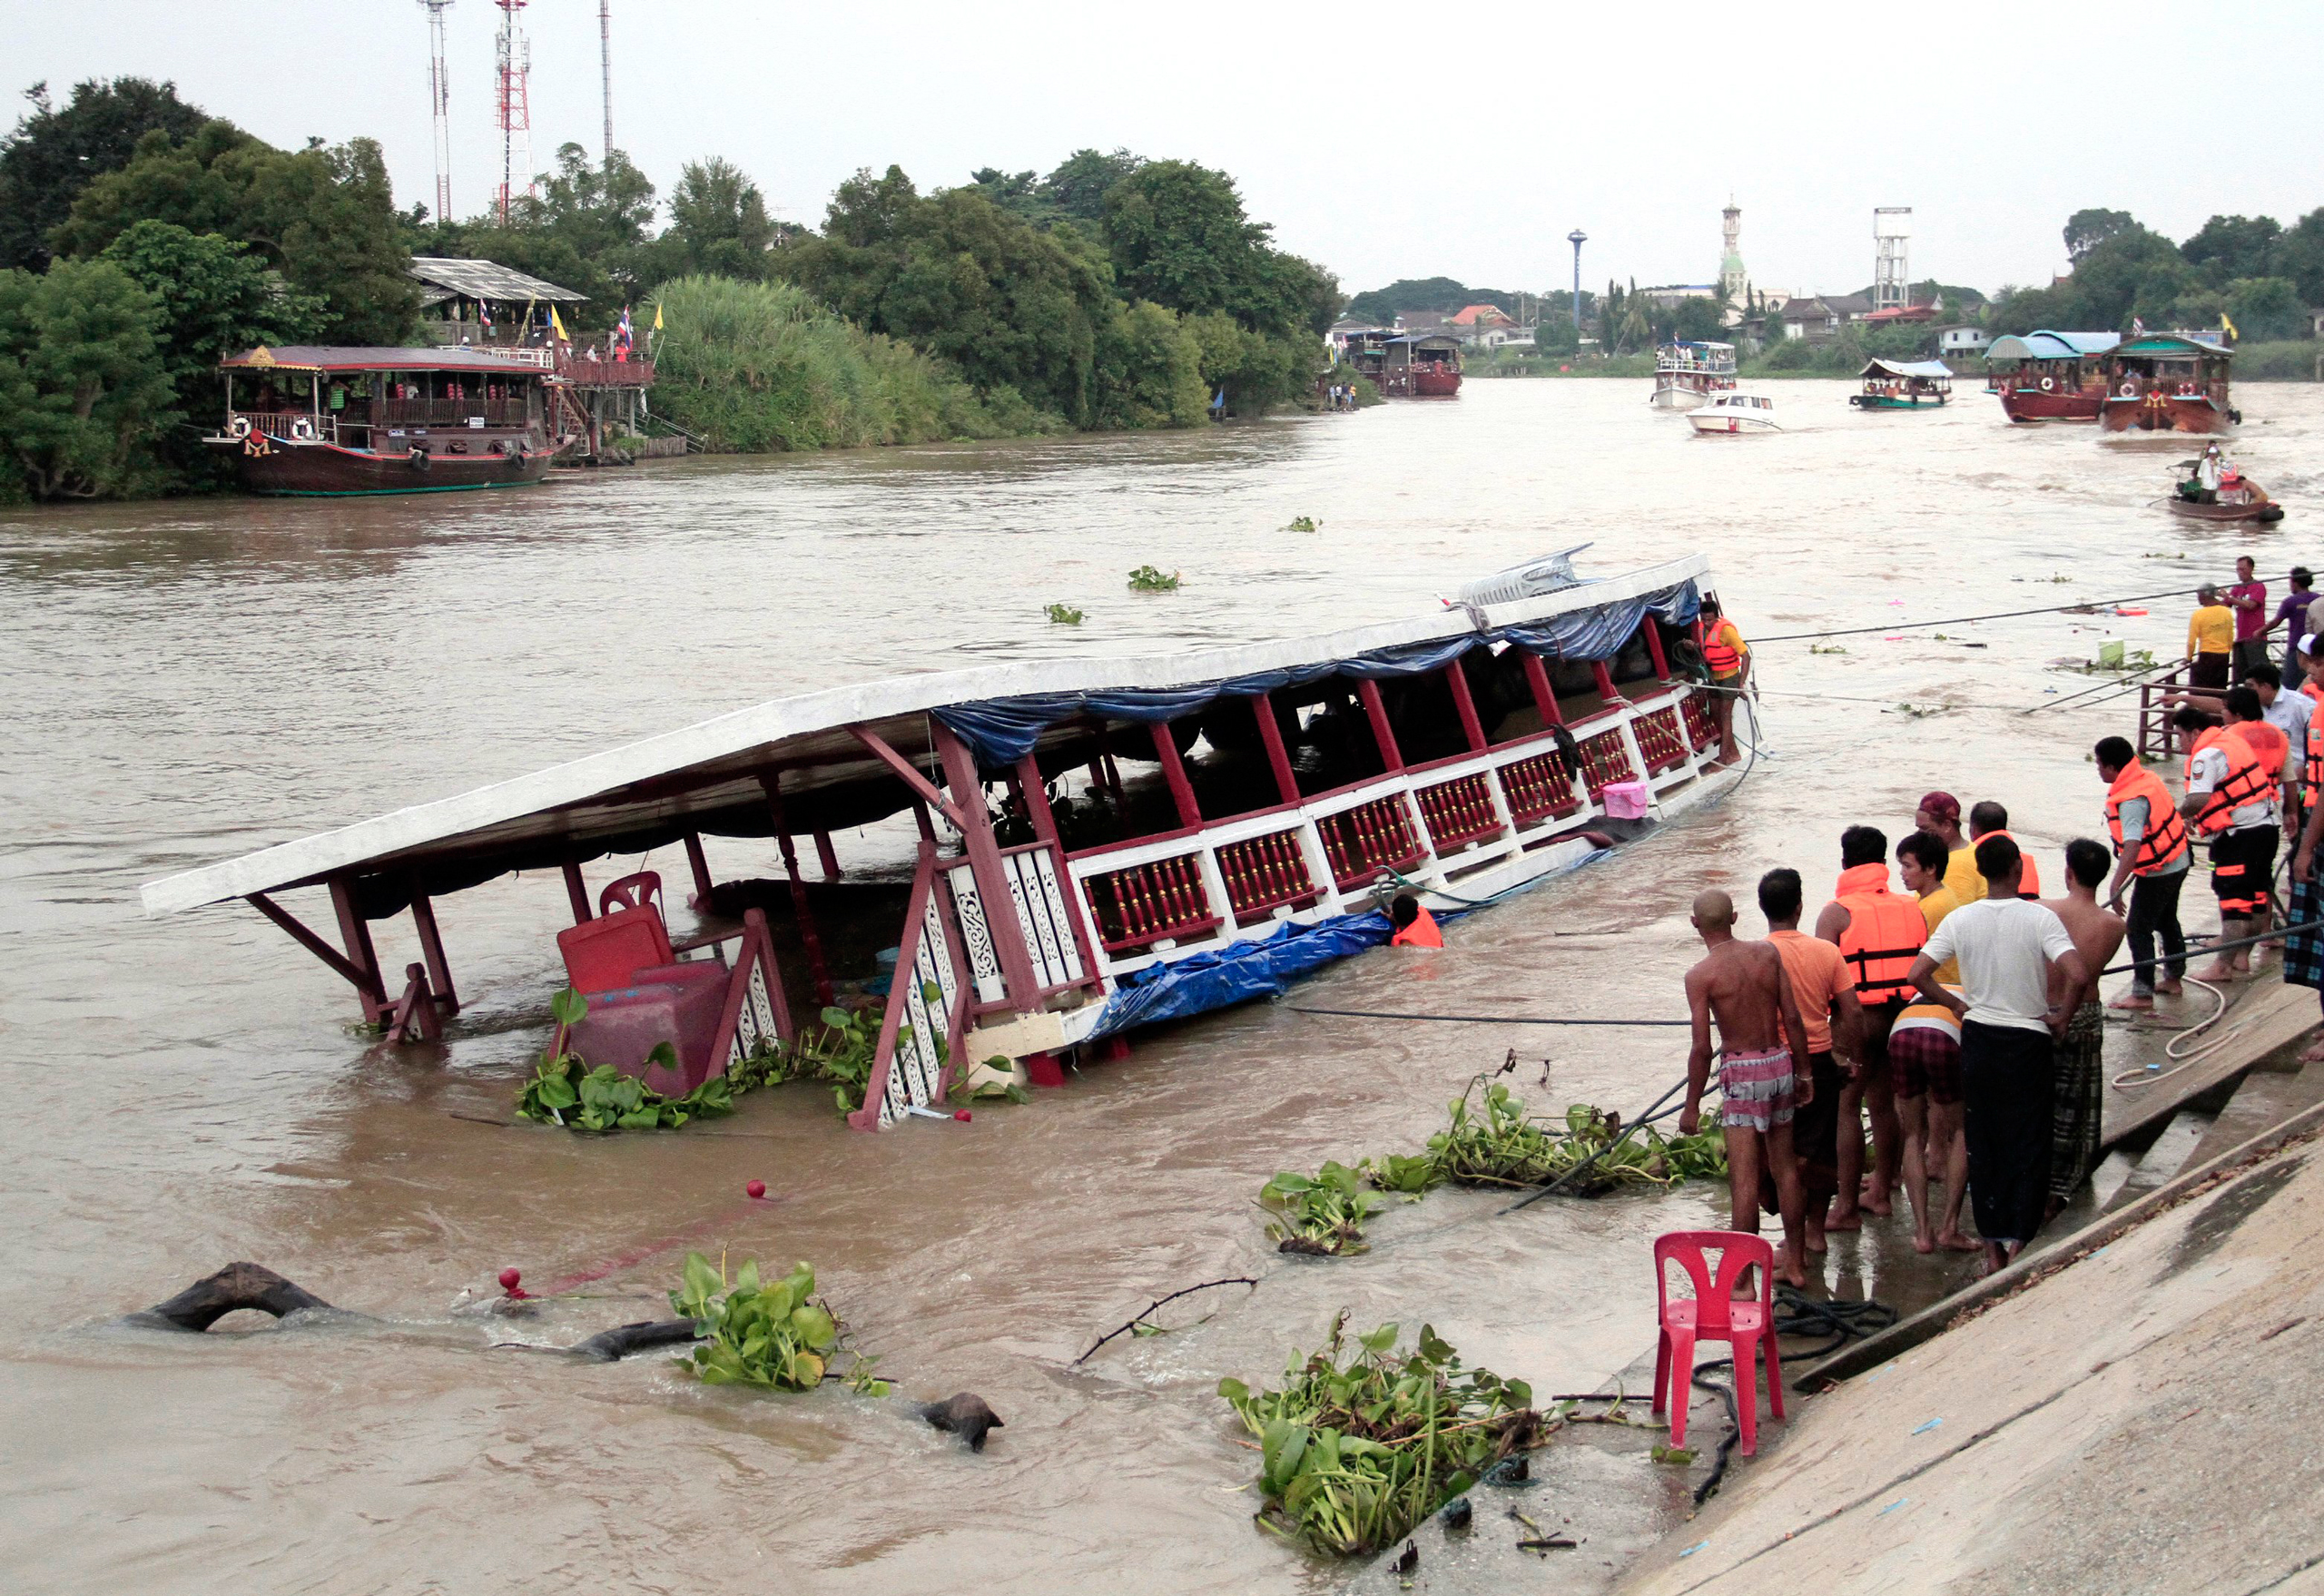 Thai news reports say at least 13 people were killed when a double-decker passenger boat carrying more than 100 people capsized in the Chao Phraya River north of Bangkok in Thailand on Sept. 18, 2016.